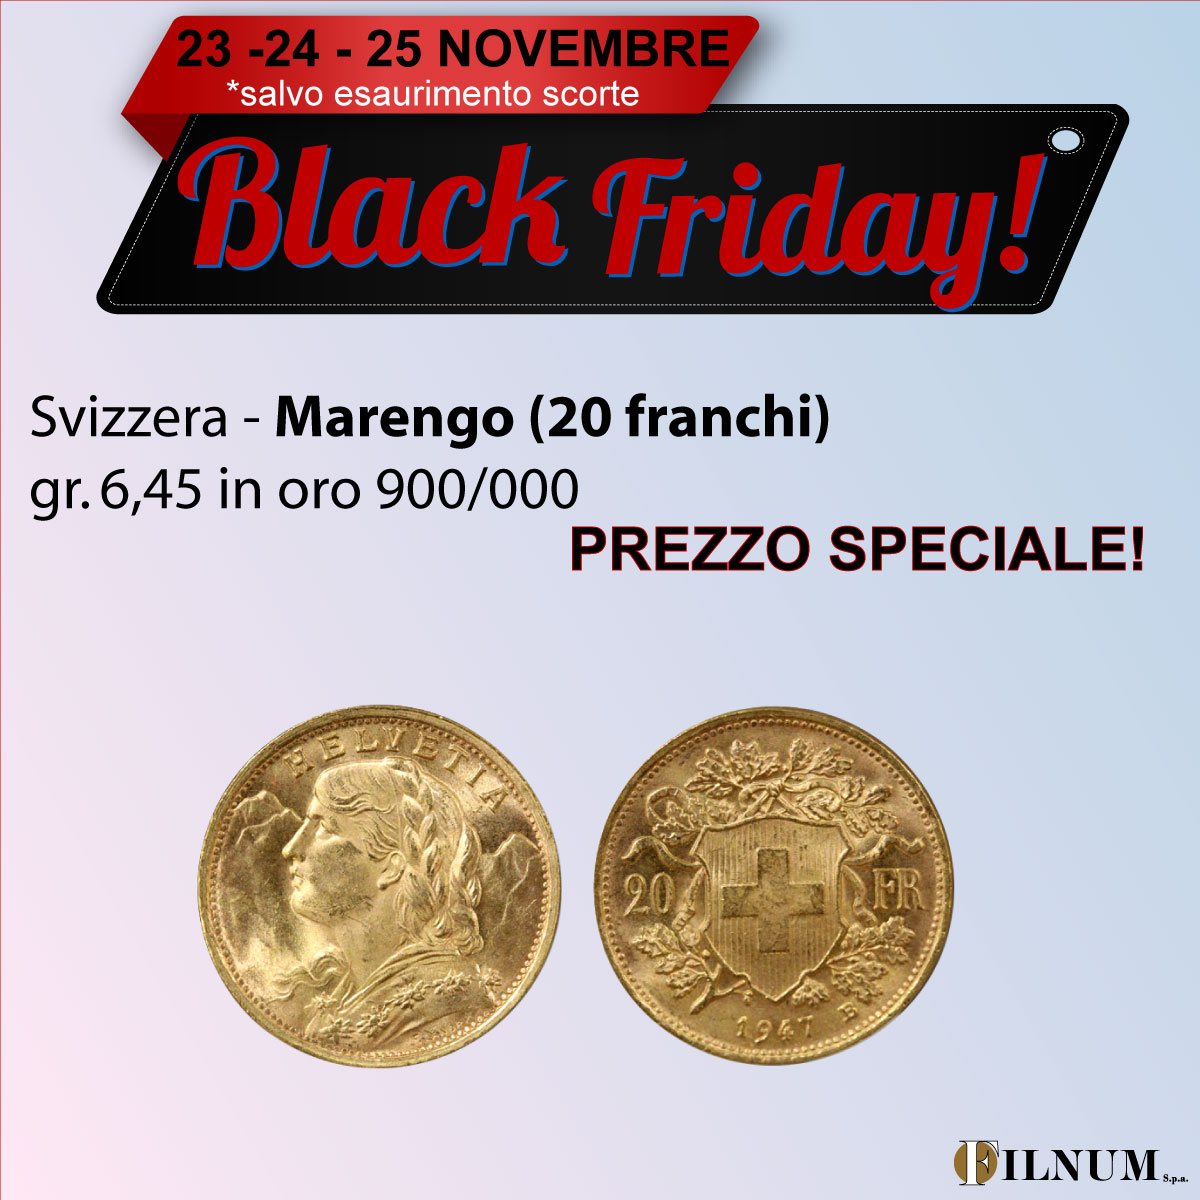 Marengo - 20 franchi gr. 6,45 in oro 900/000 - BLACK FRIDAY!!